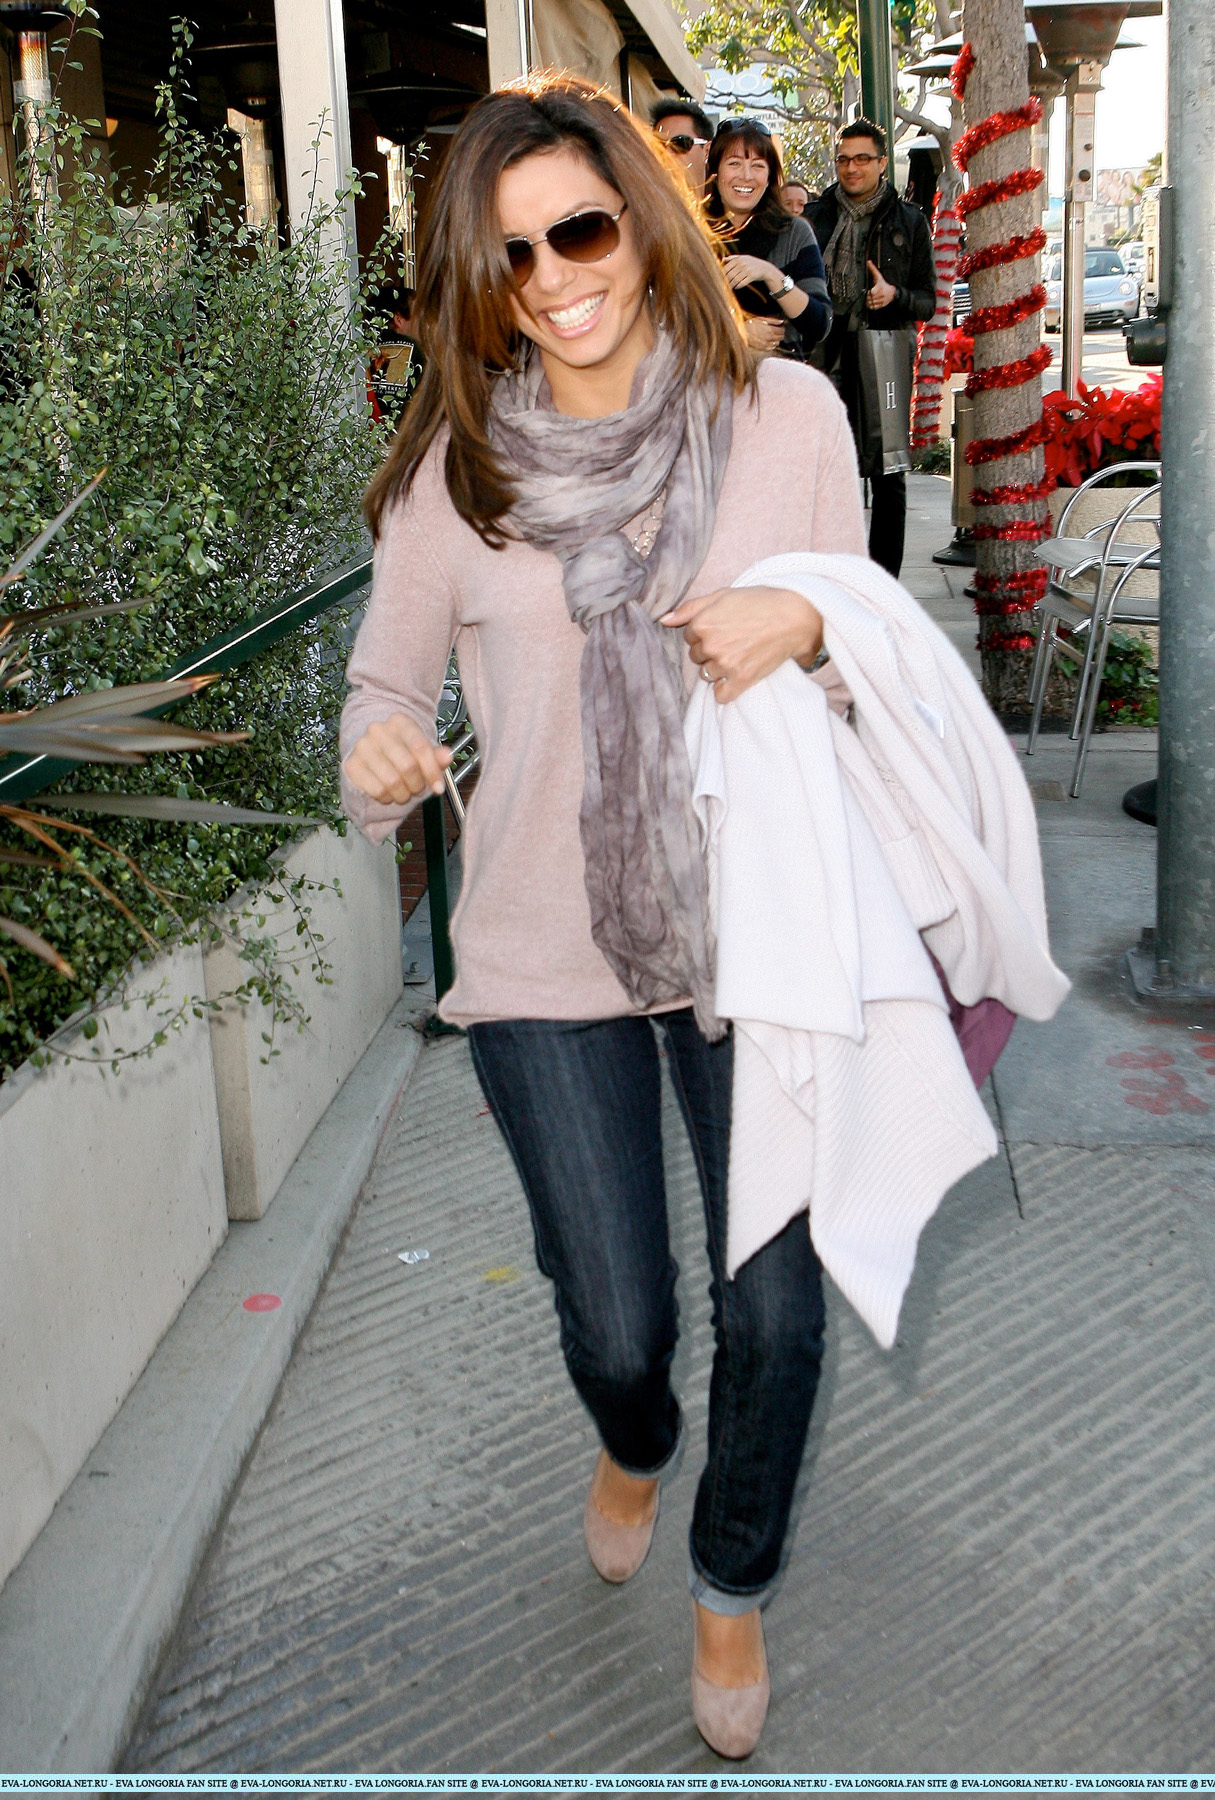 [my 39k] Eva Longoria out and about in Hollywood CELEBUTOPIA